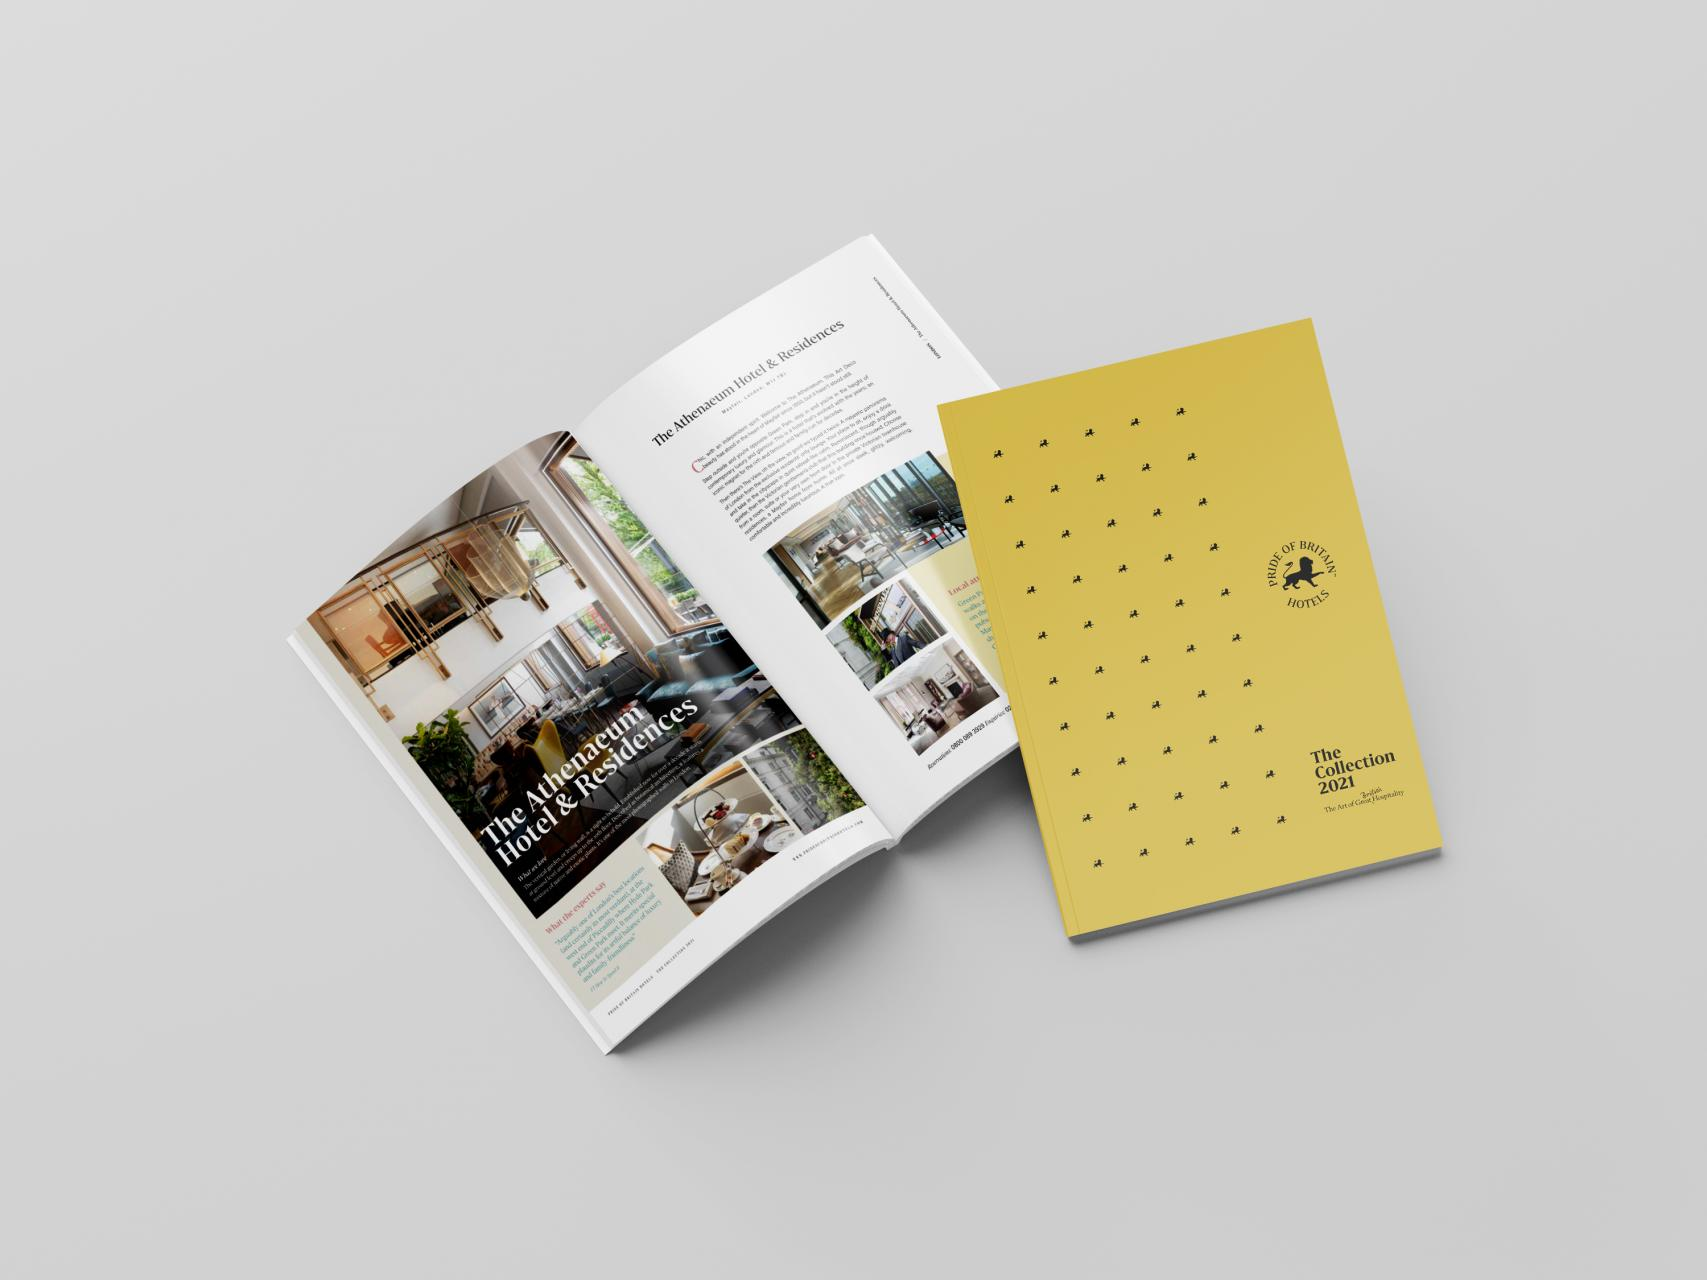 The Collection hotel directory